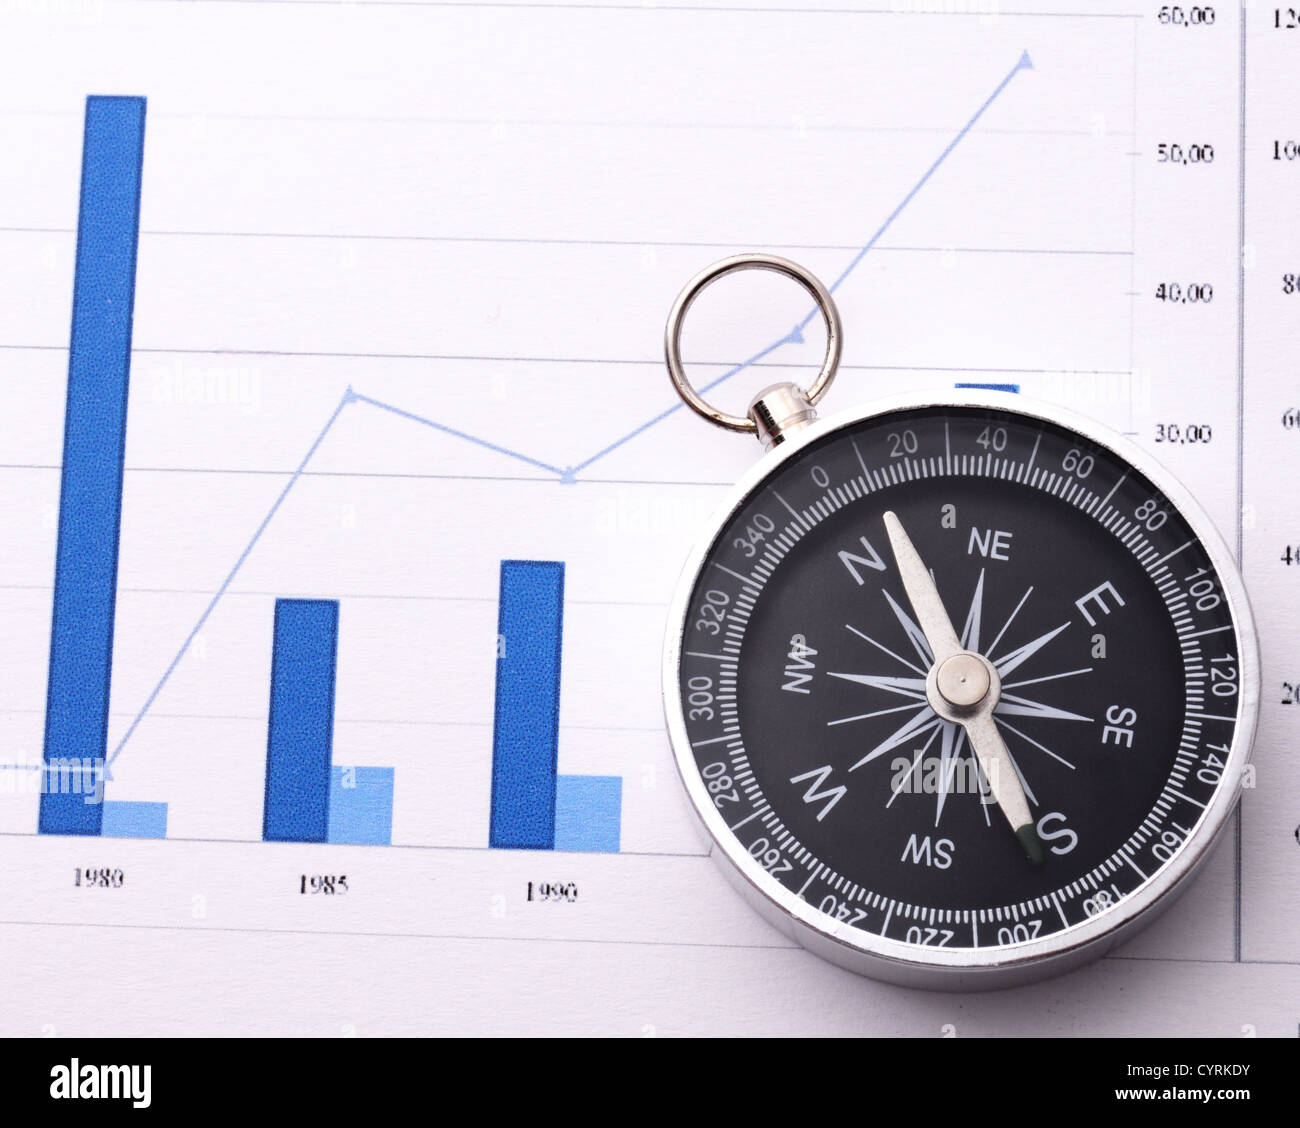 business navigation concept with compass and diagram or graph - Stock Image